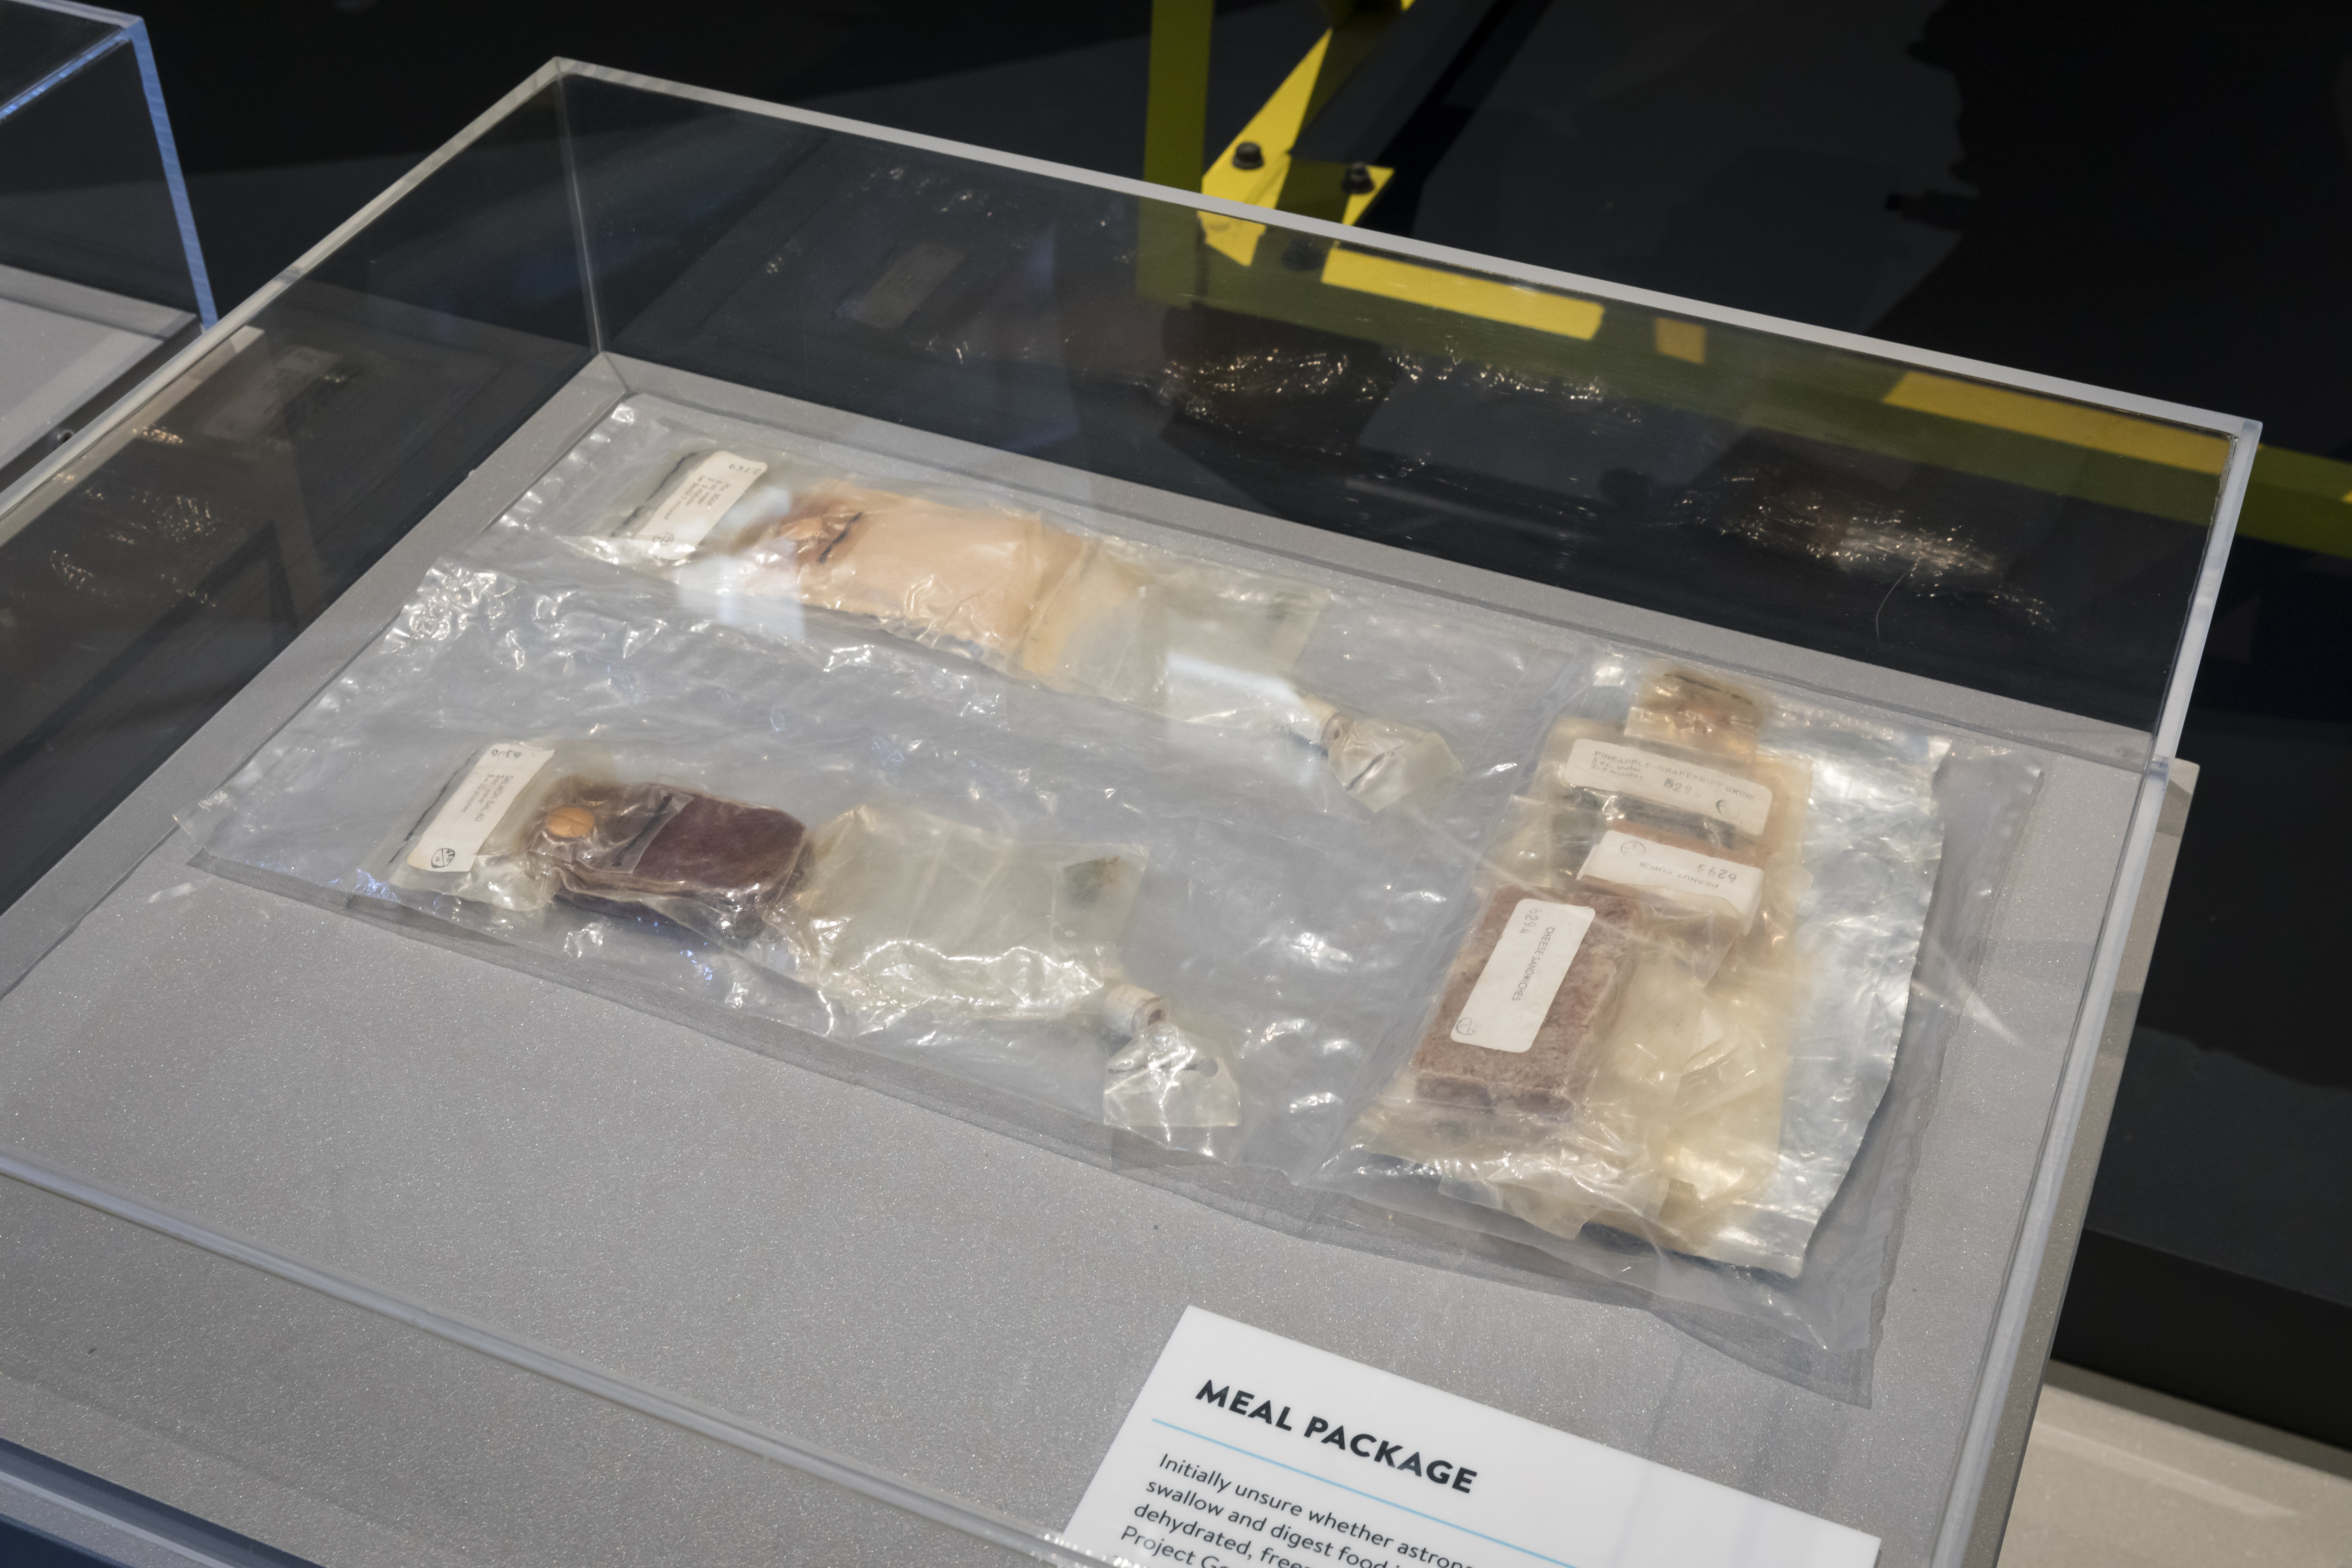 A large clear plastic bag, inside which are individual pouches of food, some of which have been fitted with nozzles for easy consumption in space.